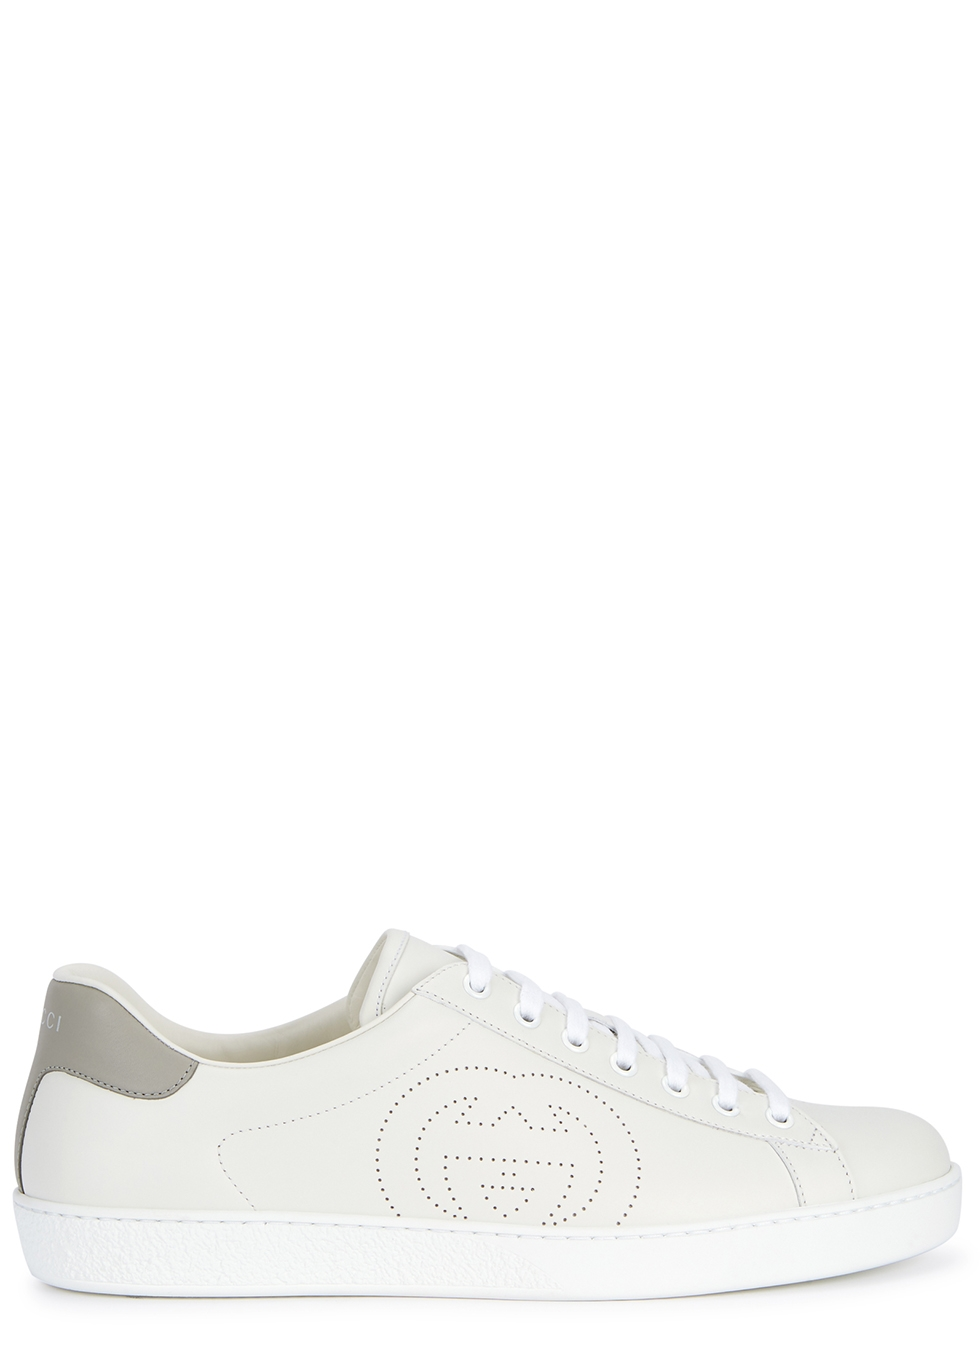 Ace white leather sneakers